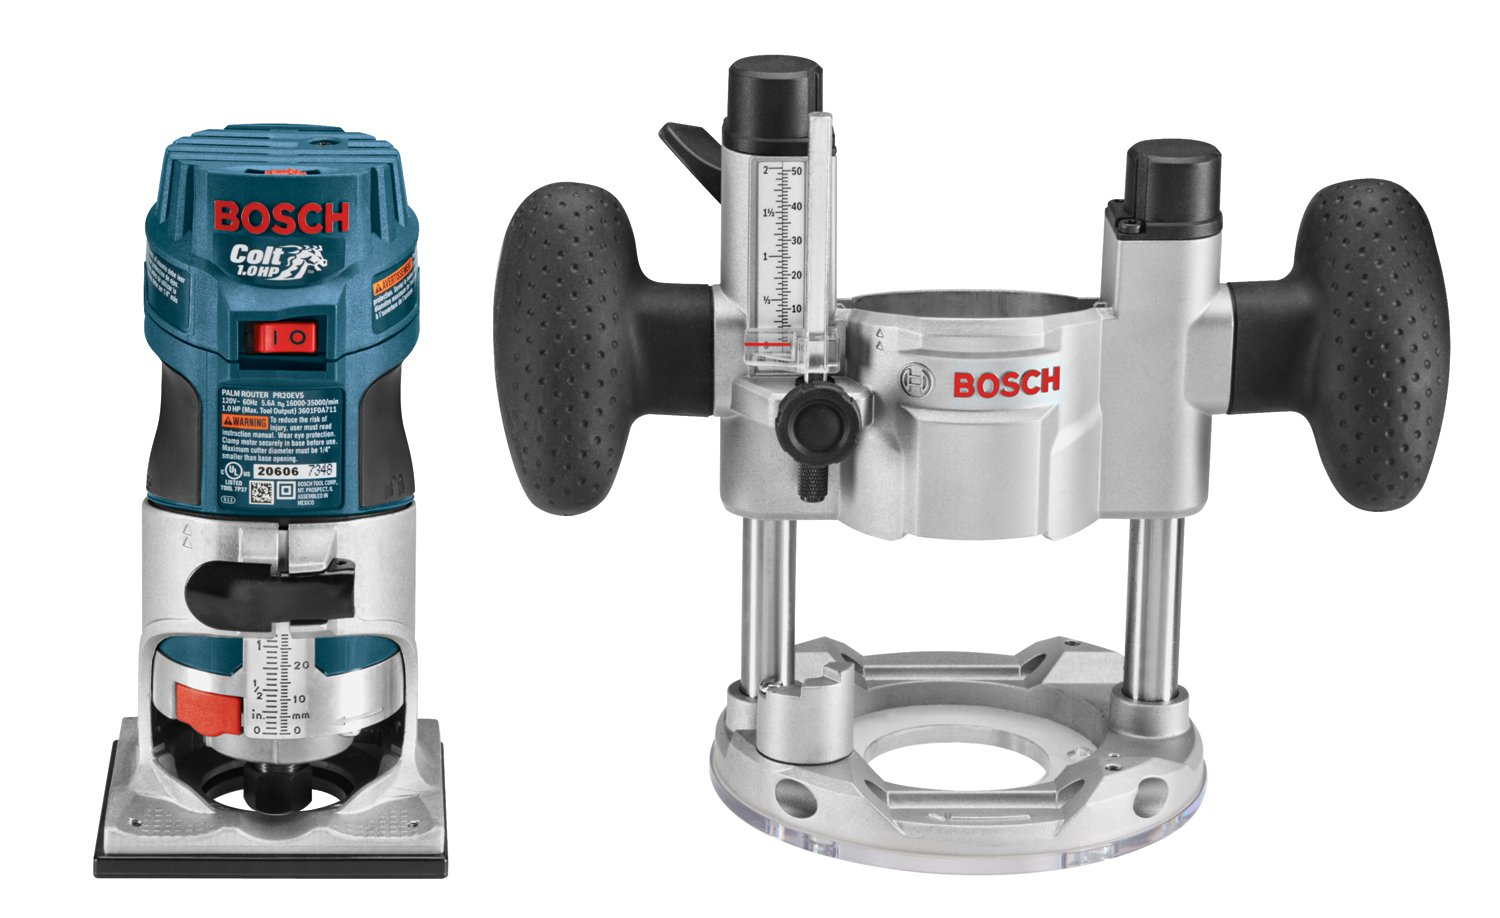 Bosch PR20EVSPK 5.6-Amp Colt Palm Grip 1-Horsepower Fixed and Plunge Base Variable-Speed Router Combo Kit